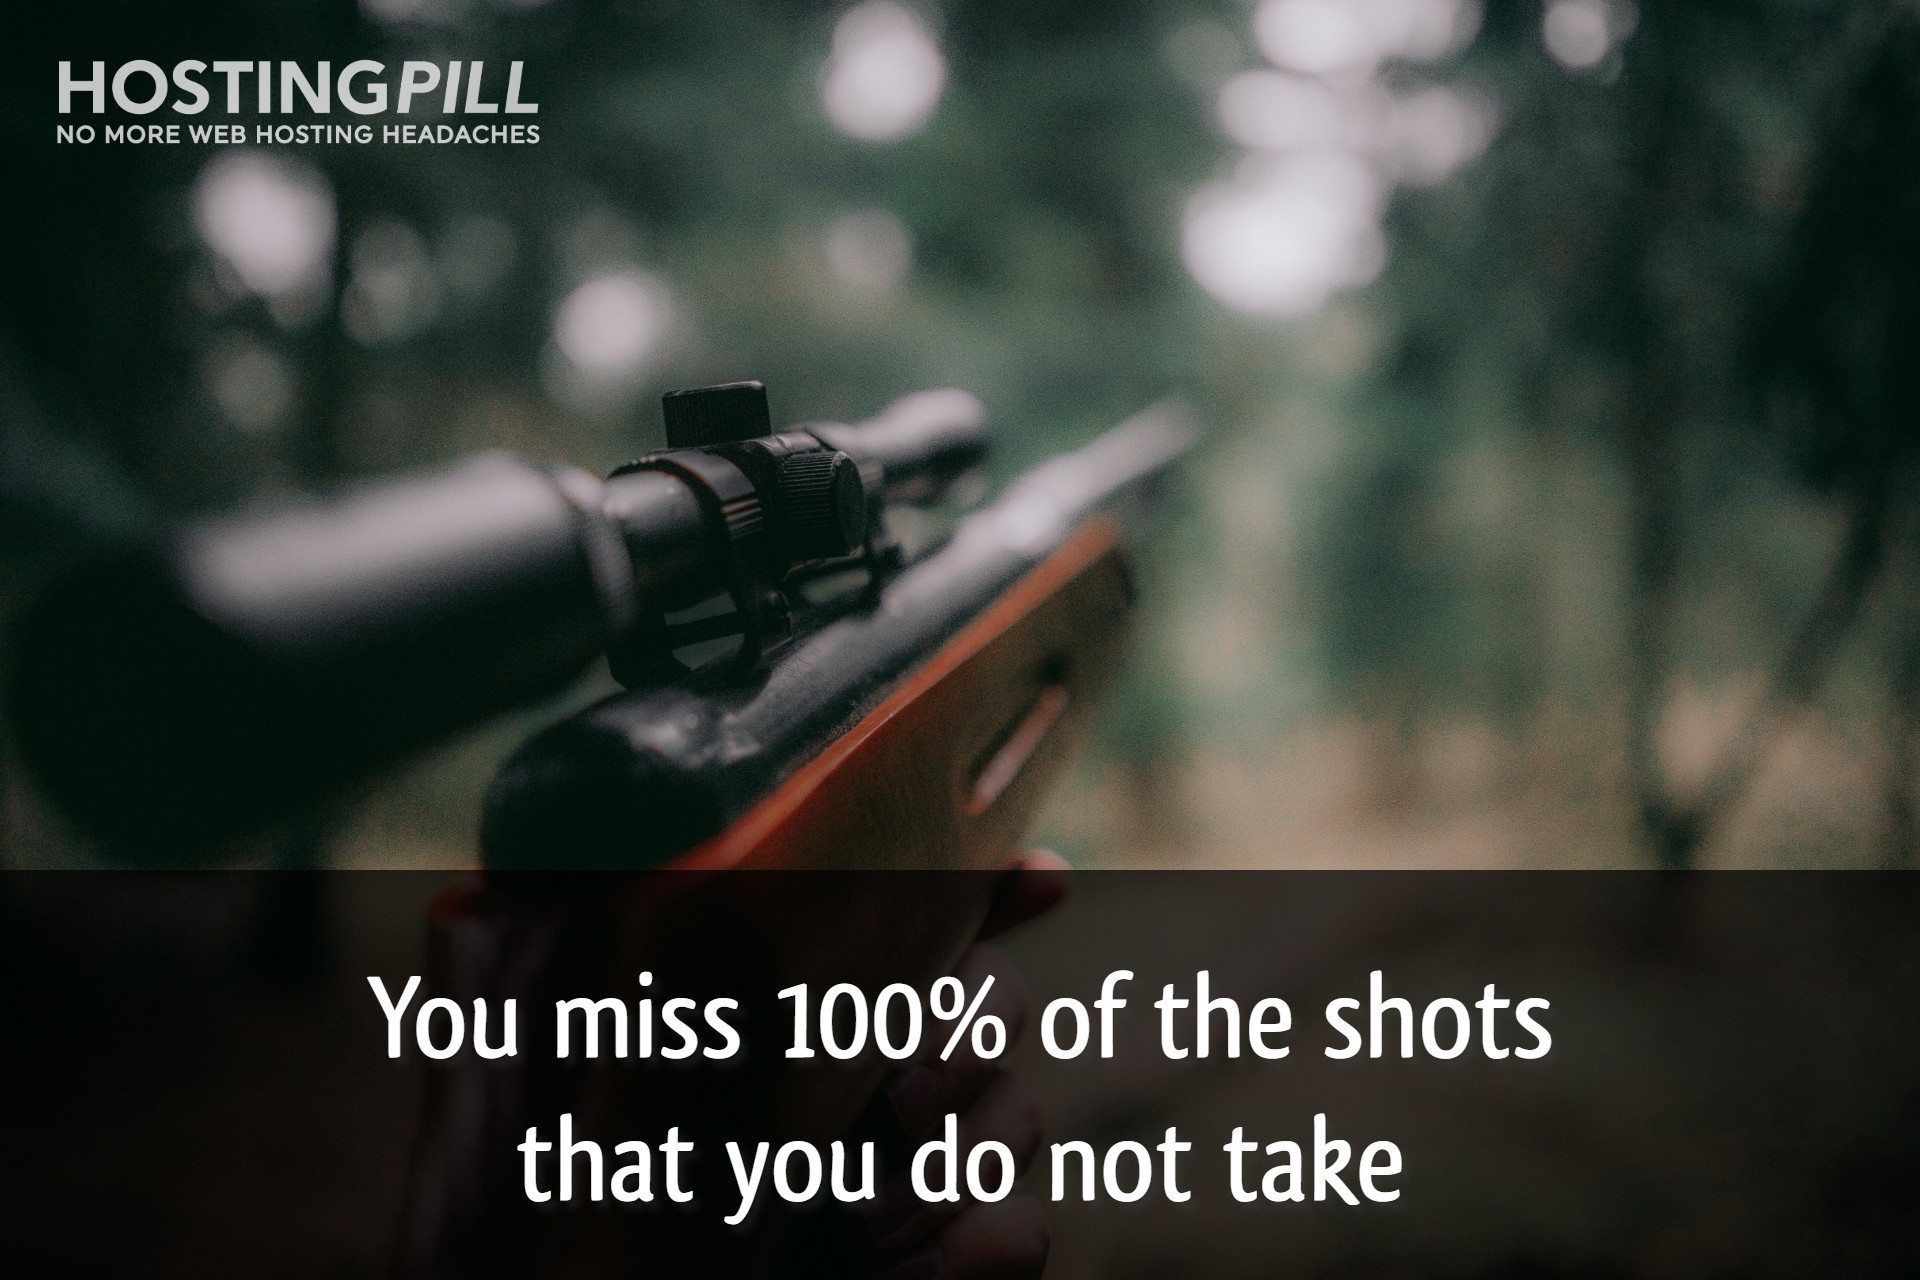 """You miss 100% of the shots that you do not take."""" - Wayne Gretzky"""